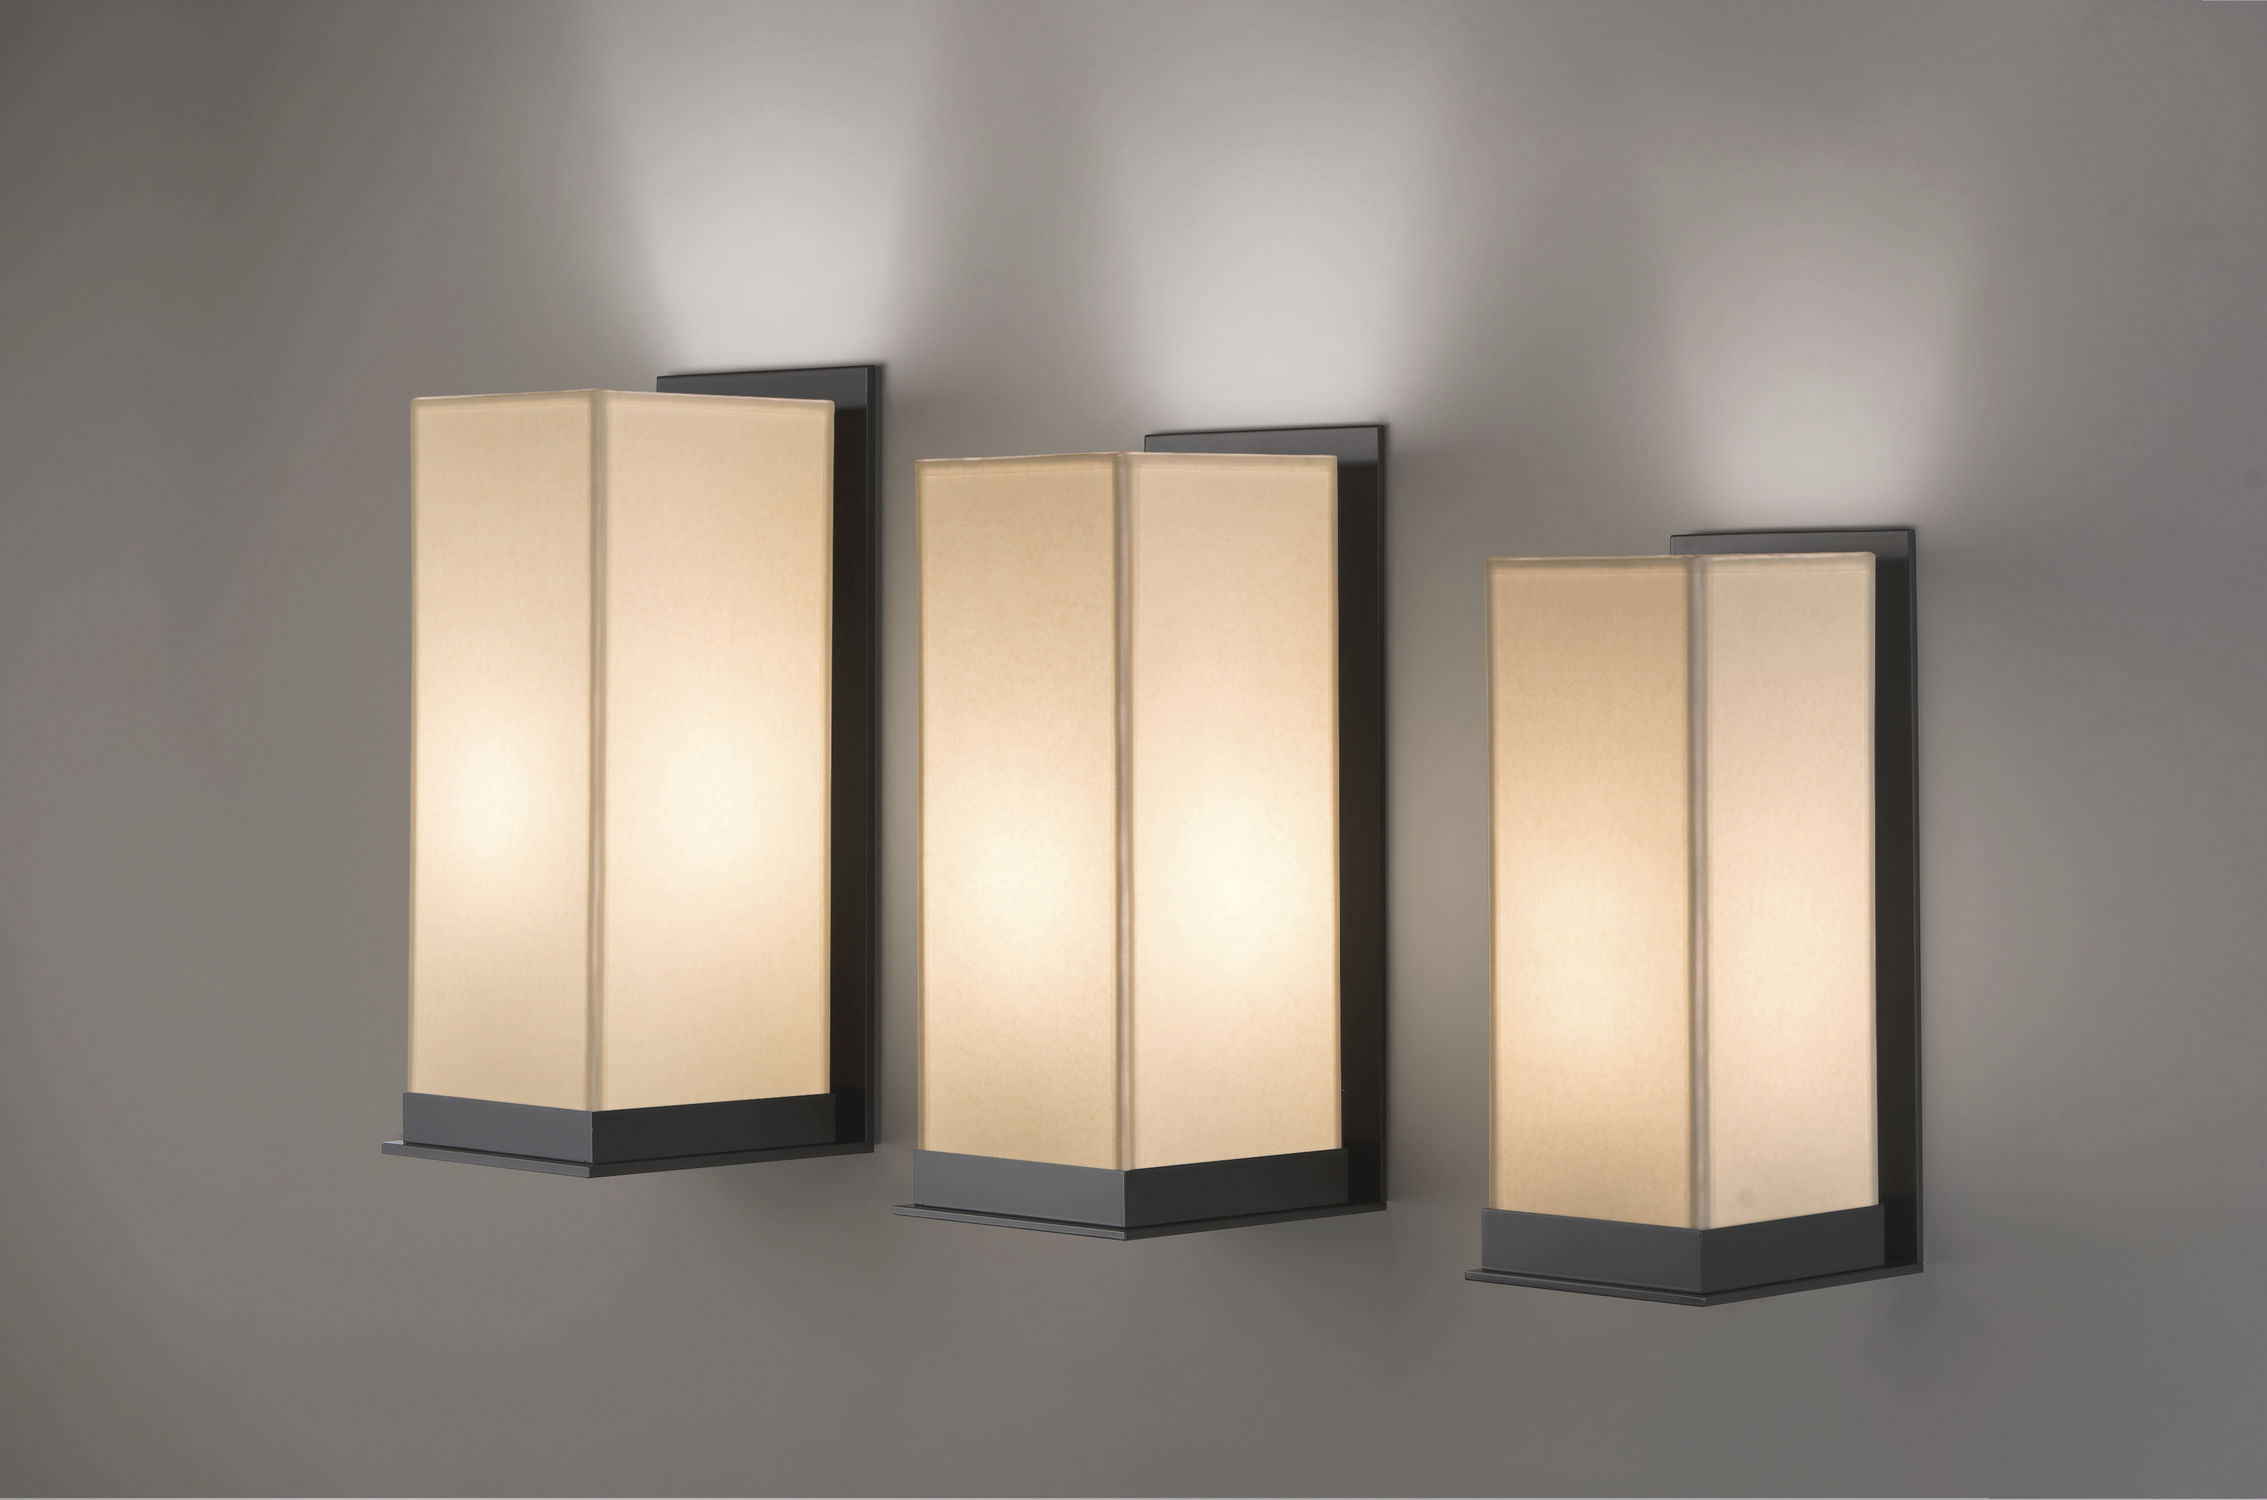 Contemporary wall light / metal / rectangular KORT Kevin Reilly Collection : kevin reilly lighting - azcodes.com